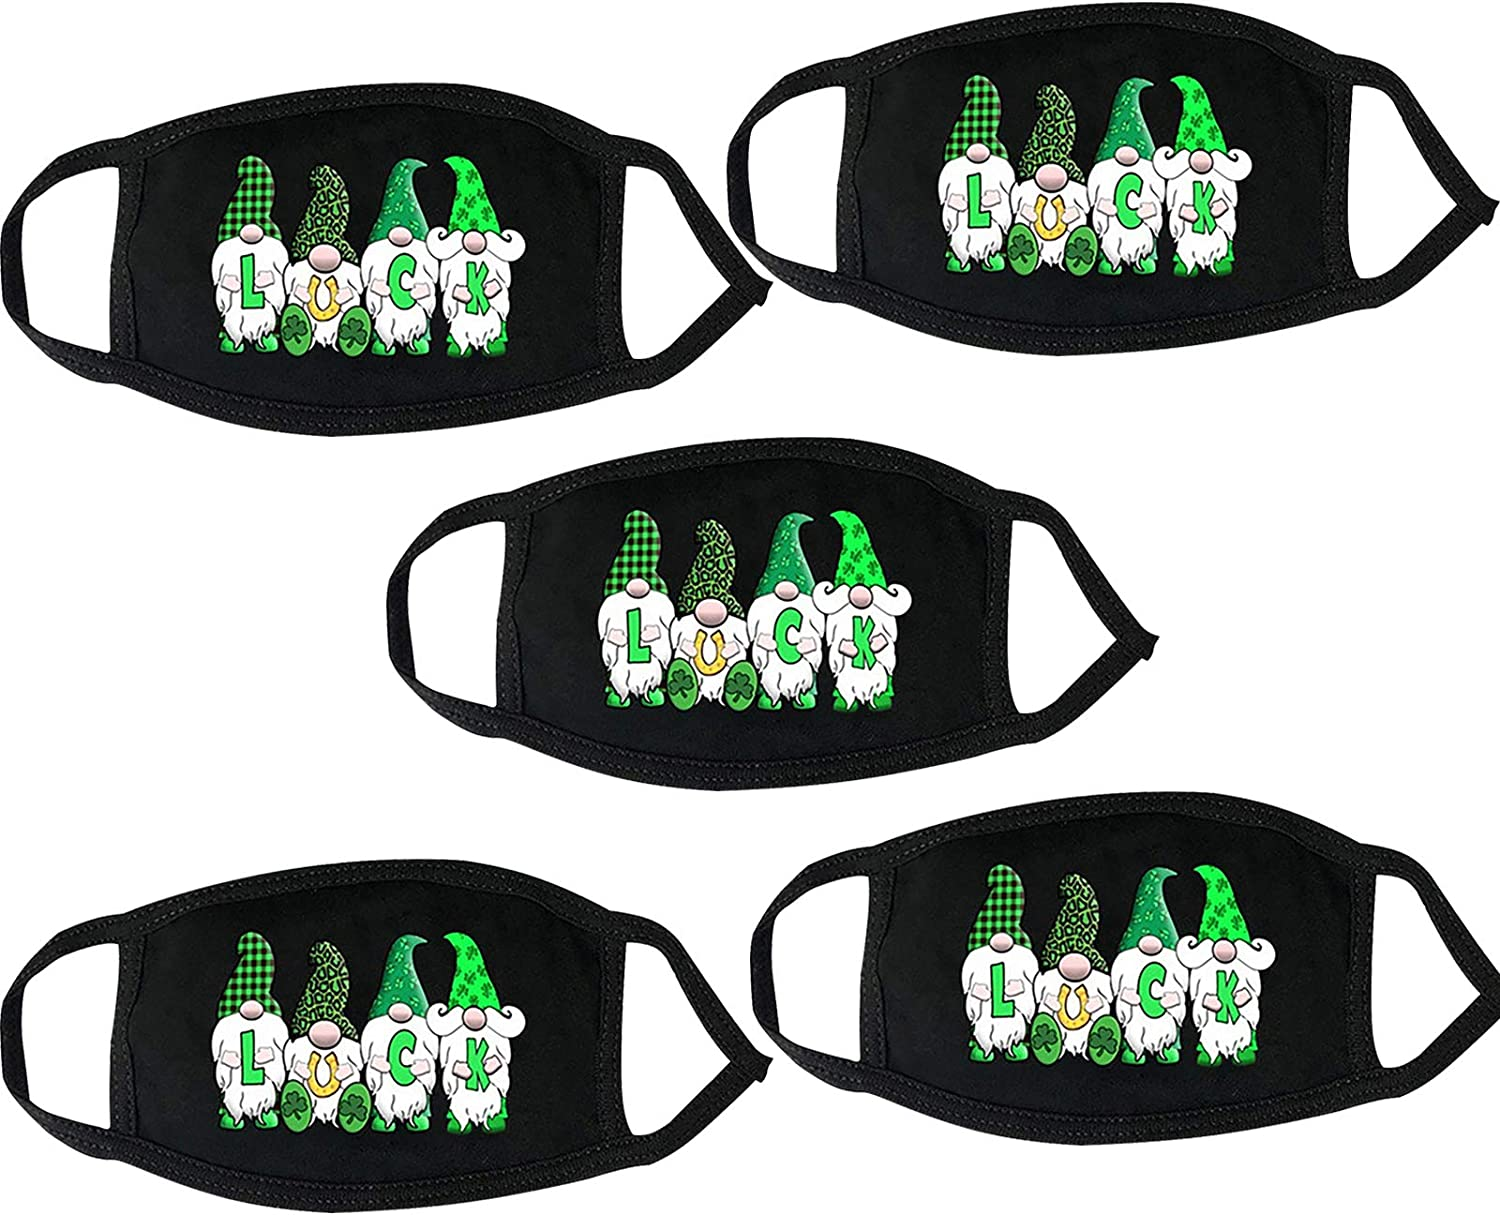 5 Pcs St. Patrick's Day Face_Mask Ranking integrated 1st place Green Adults for Sale special price Shamrock Cute